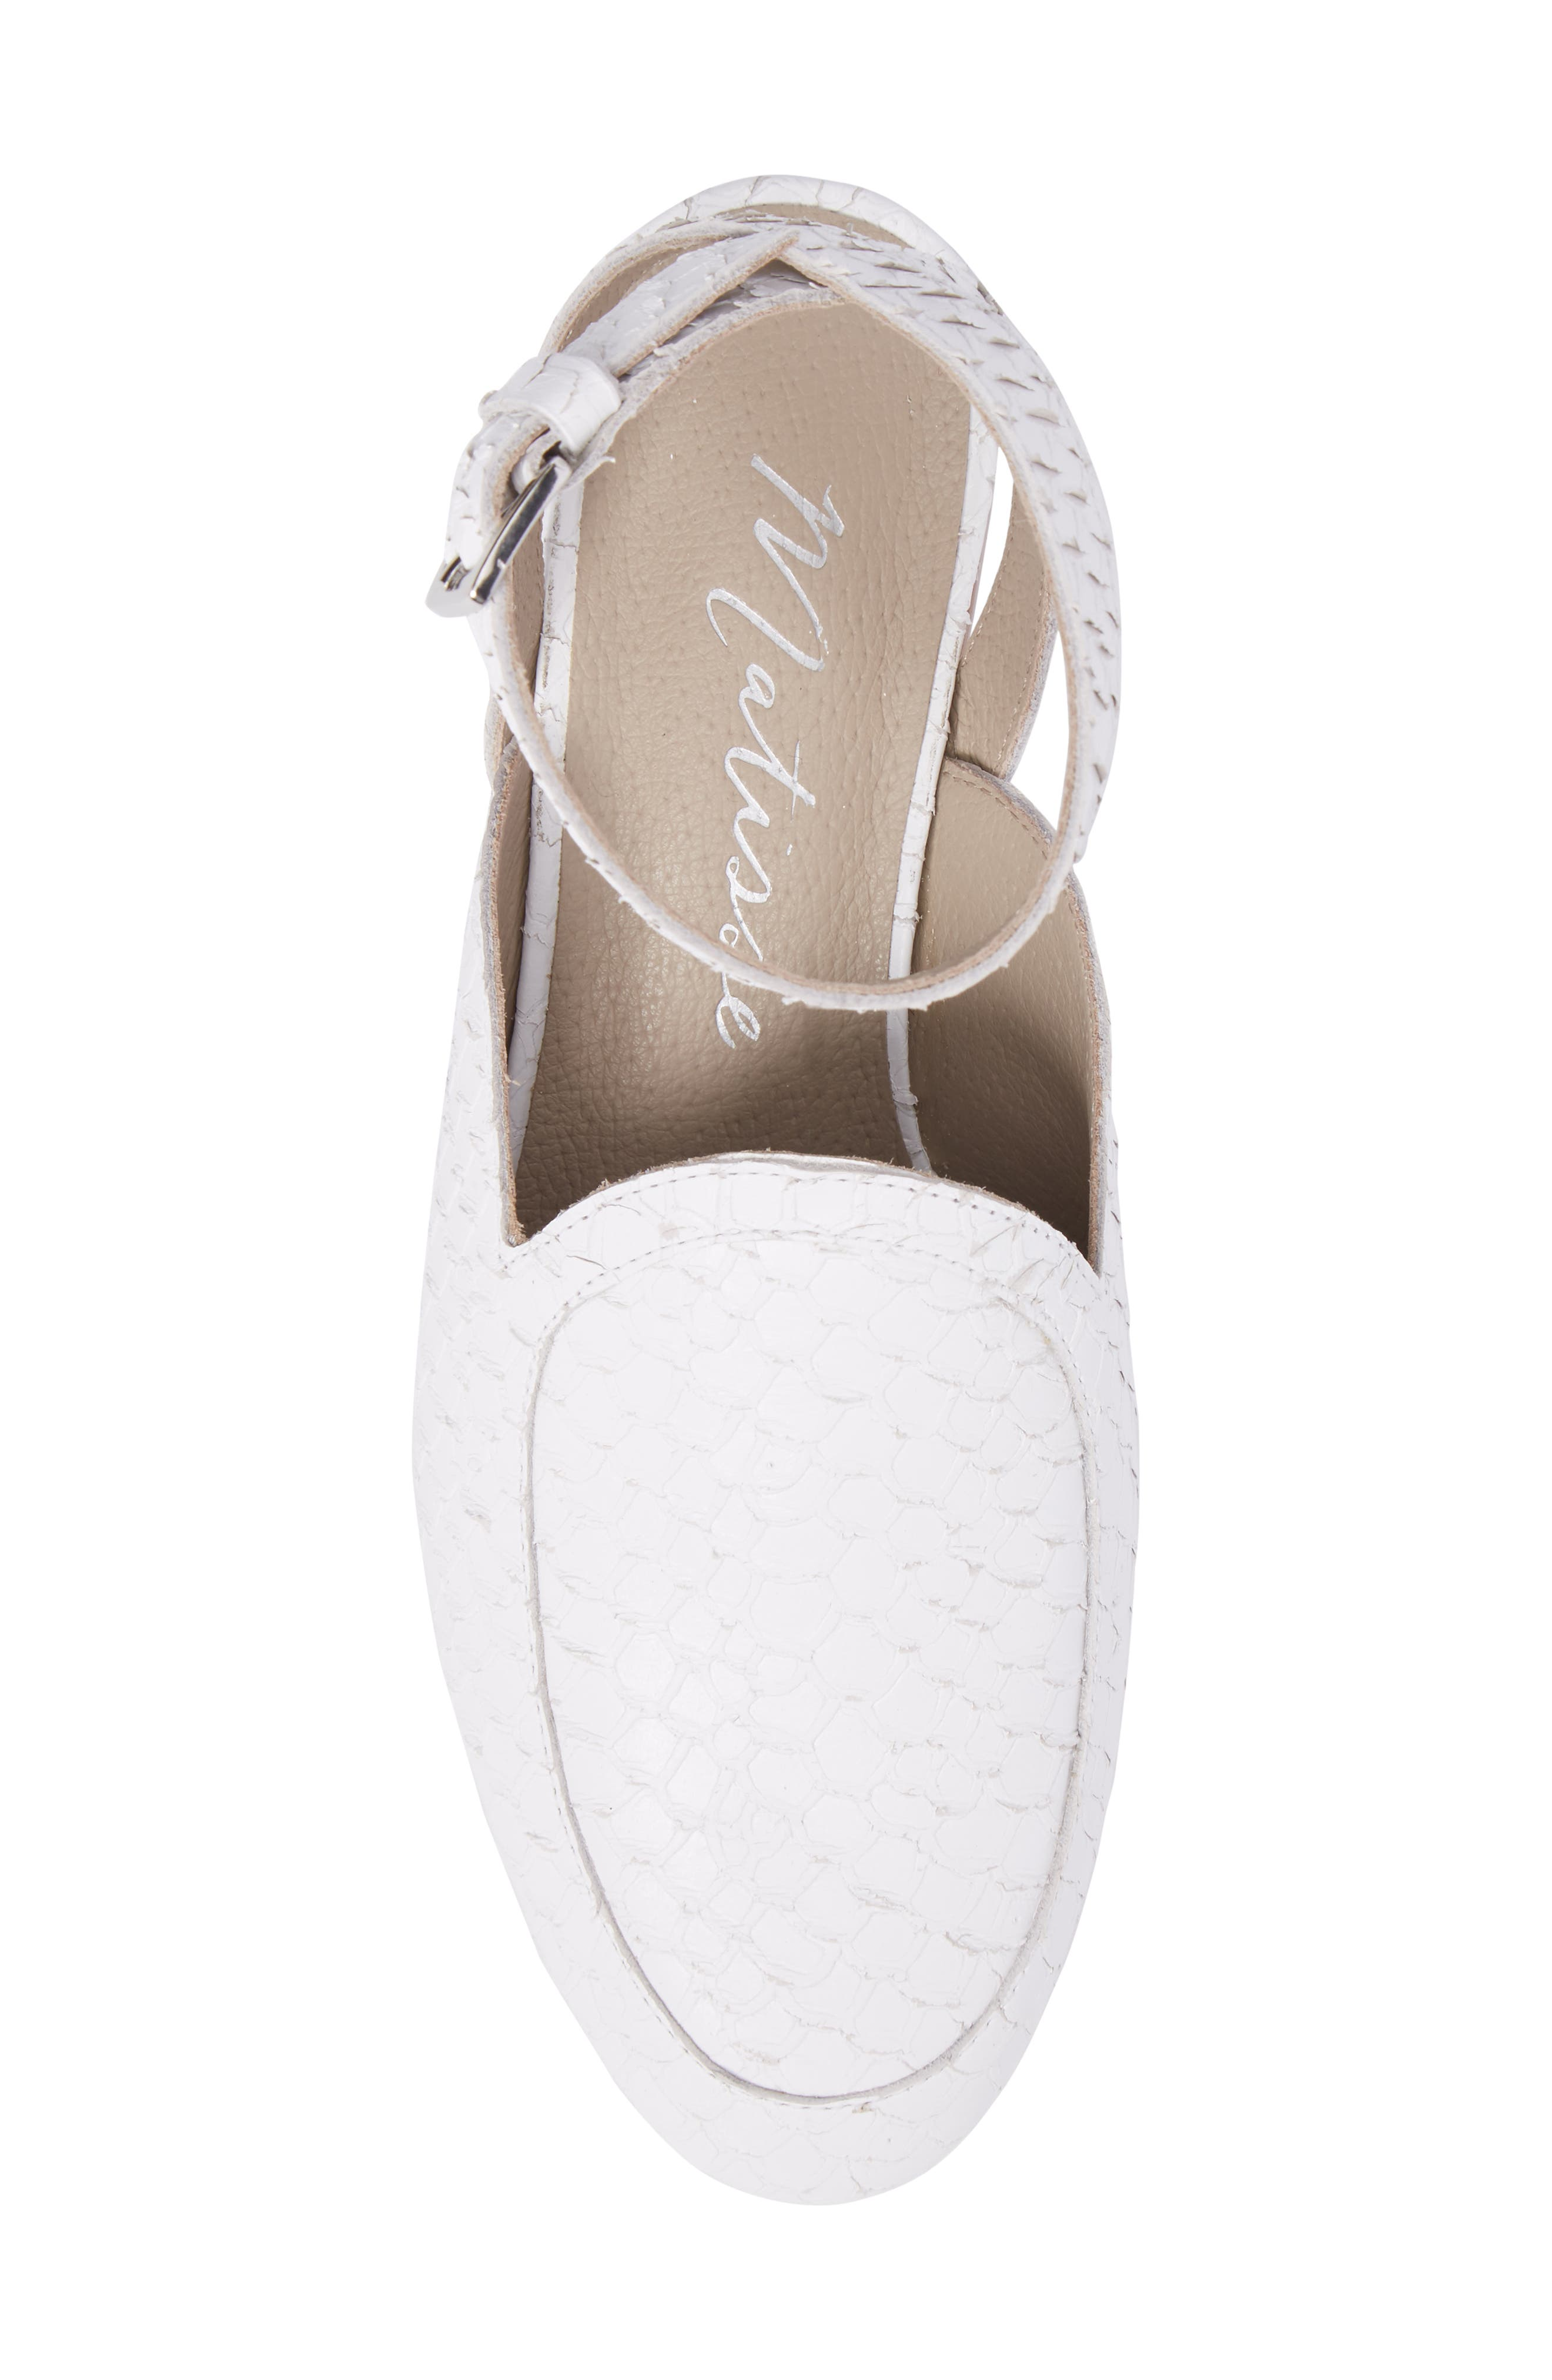 Half Moon Ankle Strap Loafer,                             Alternate thumbnail 5, color,                             WHITE LEATHER